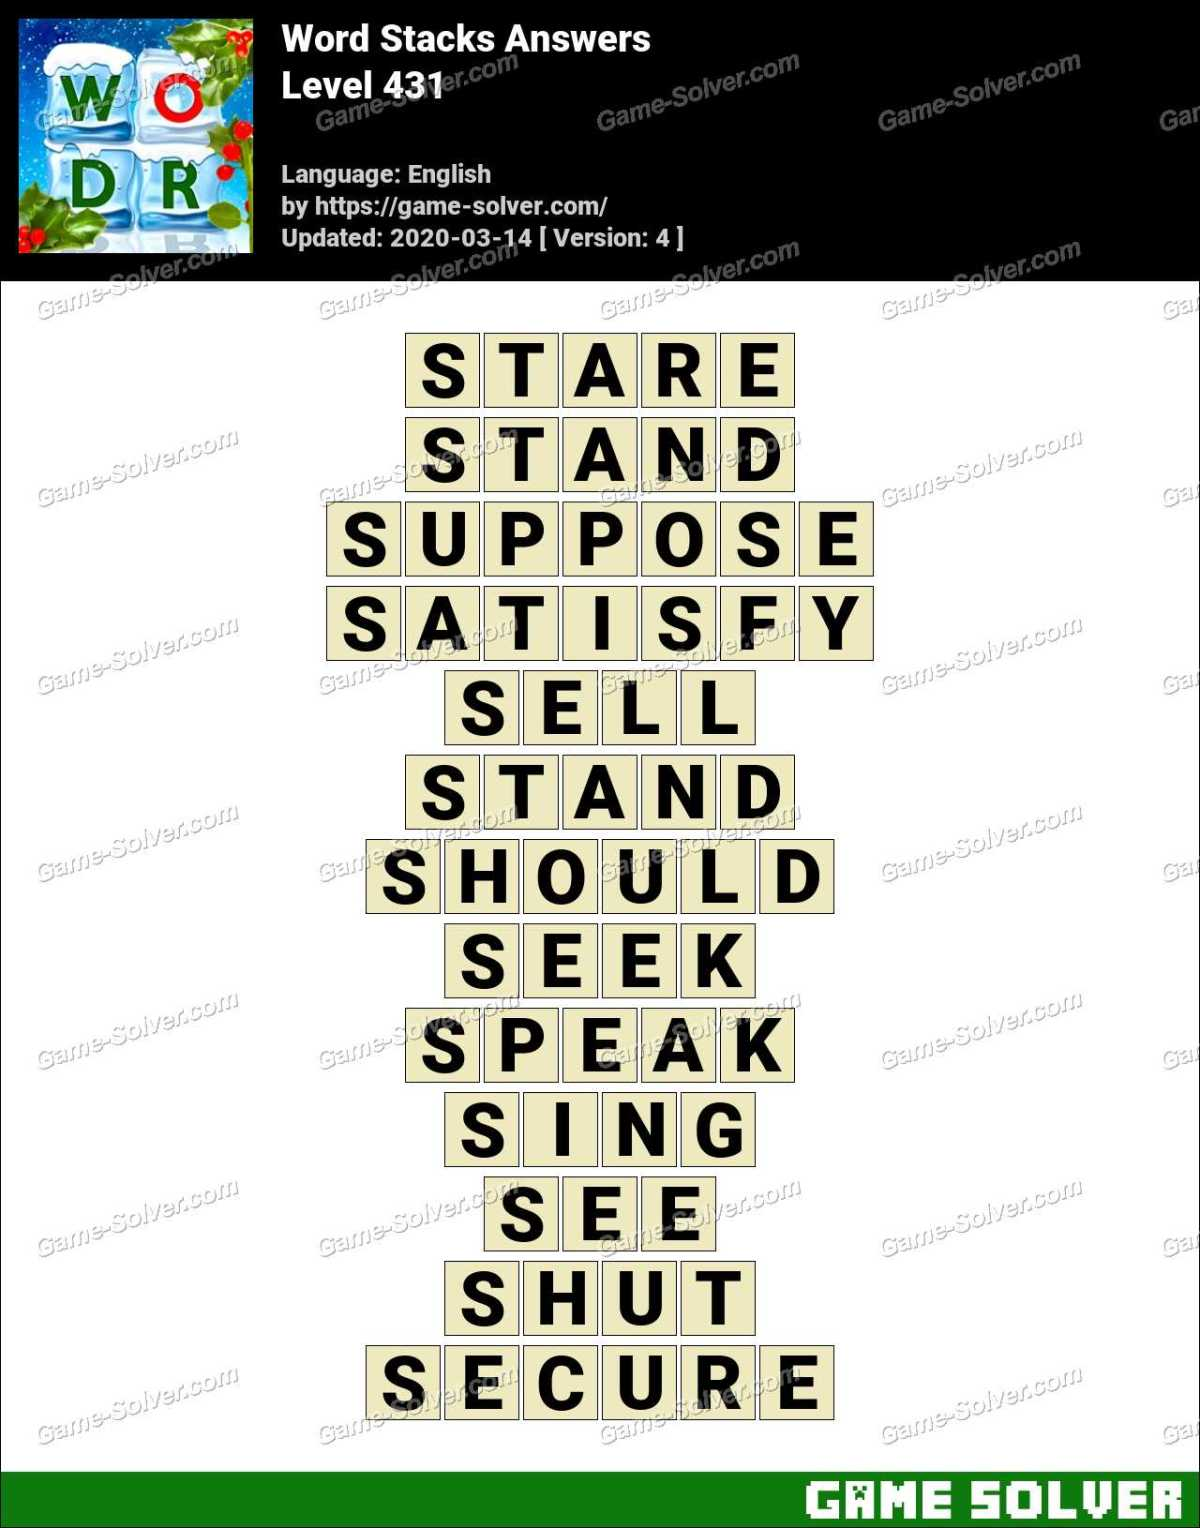 Word Stacks Level 431 Answers